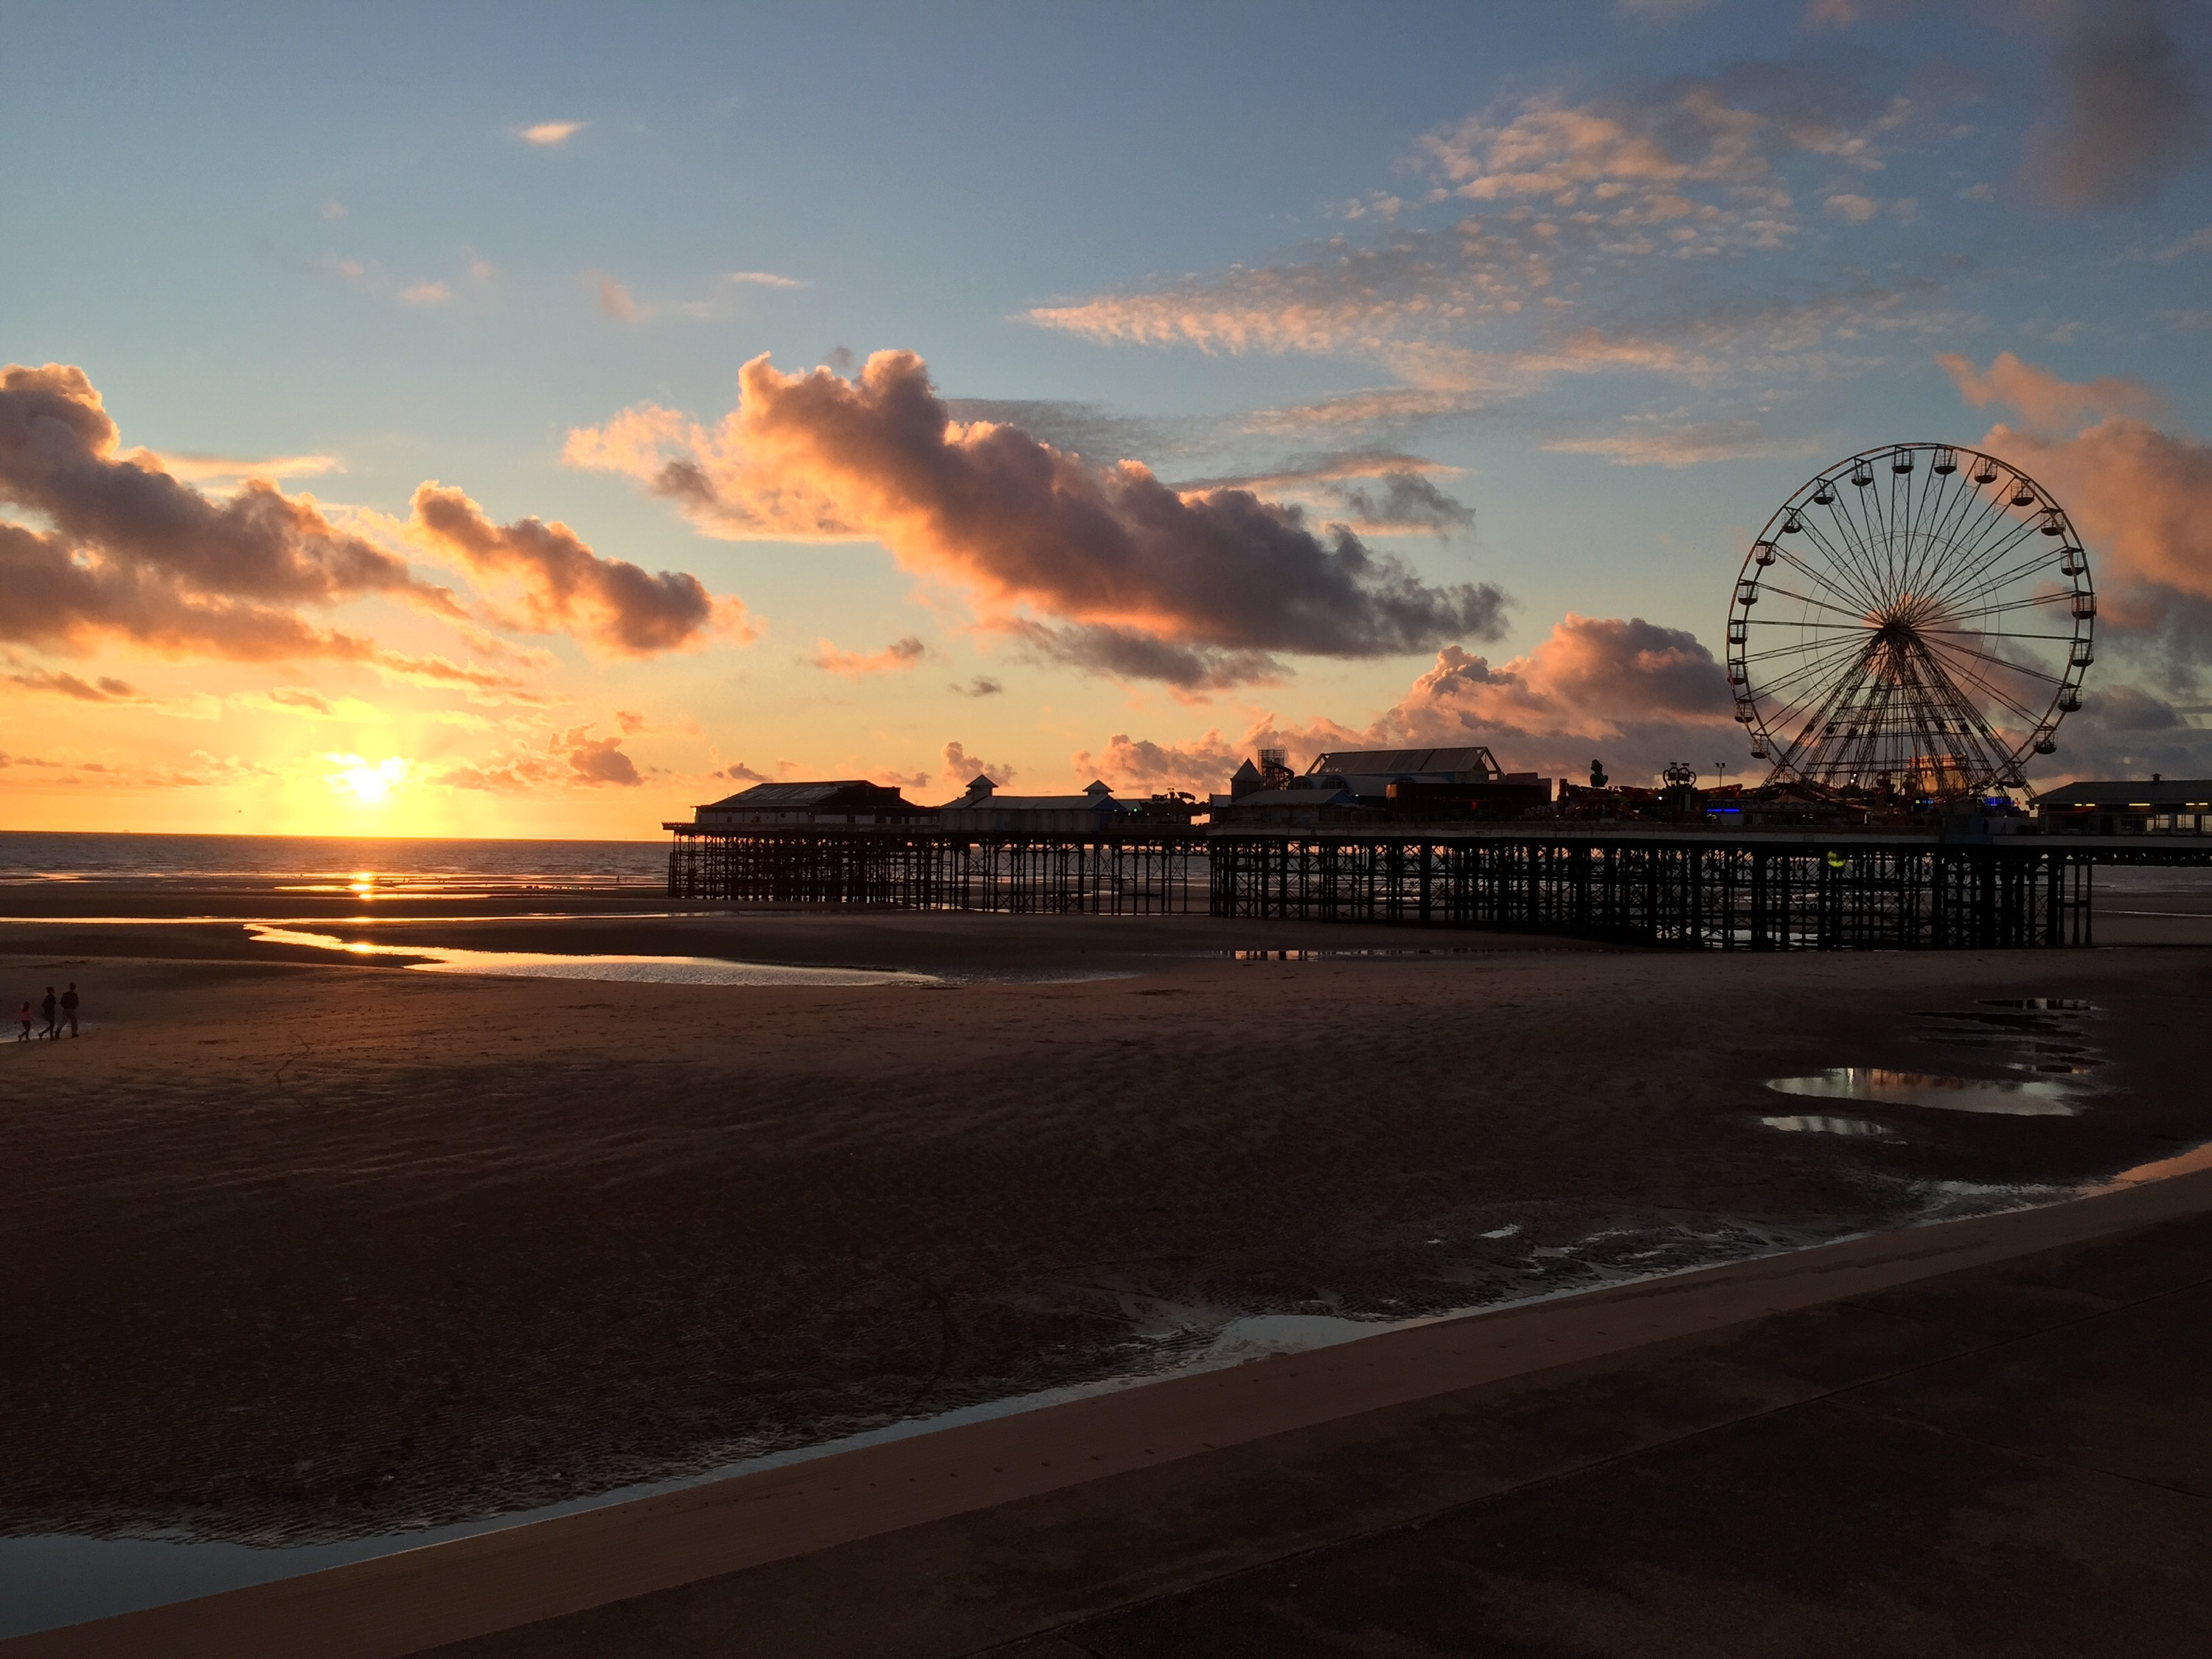 Central Pier at sunset